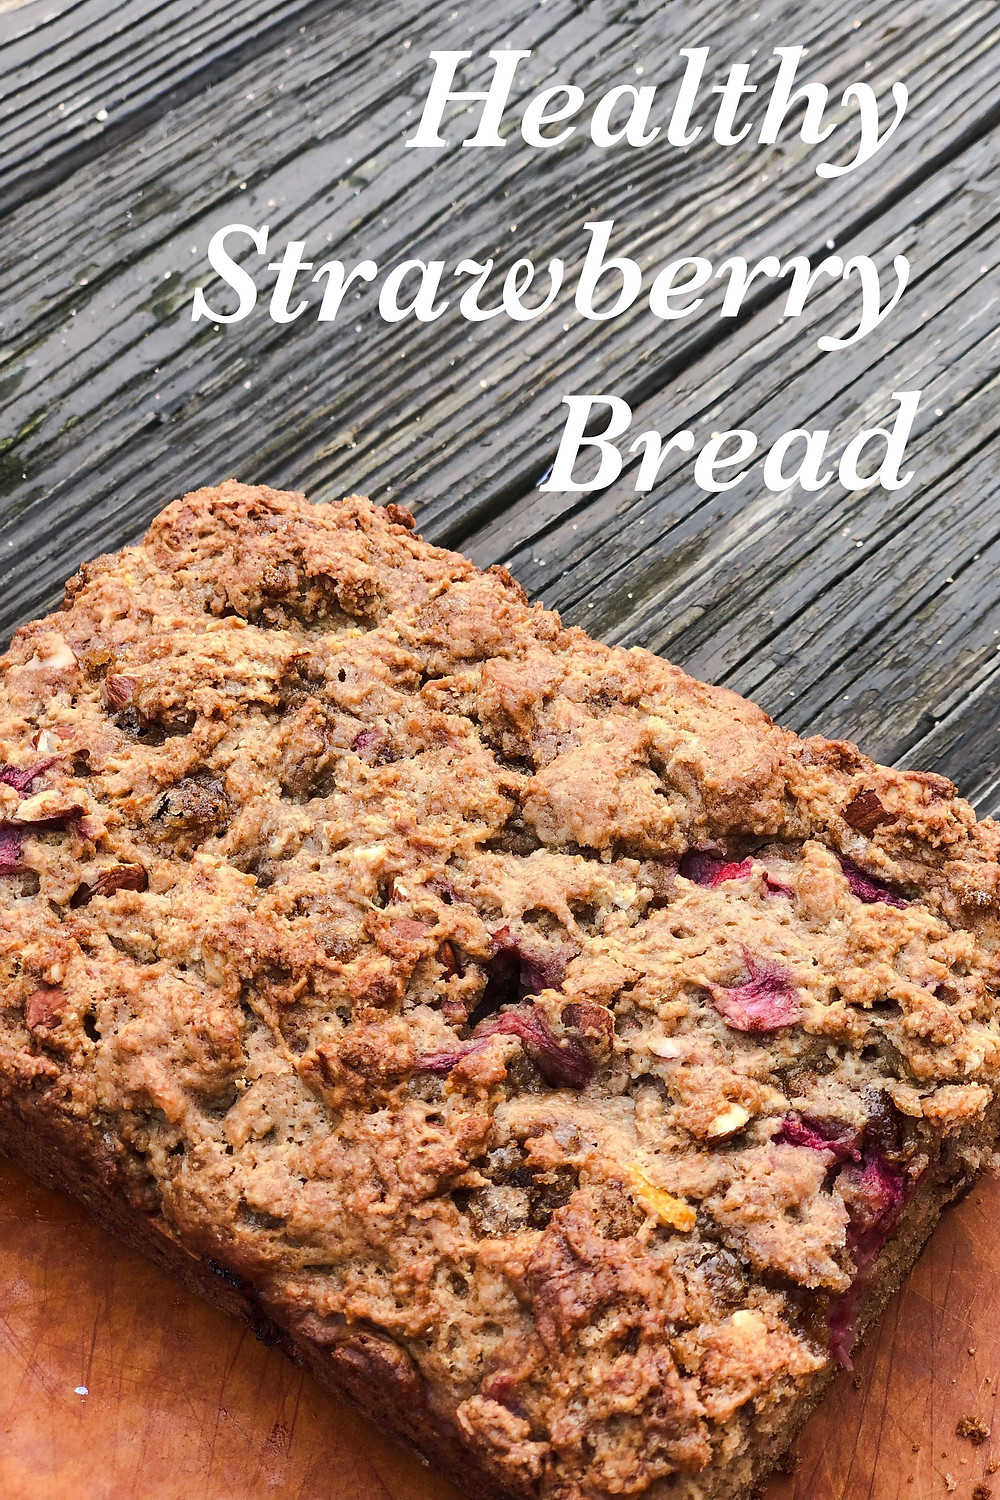 Quick and healthy breakfast bread made of whole wheat and strawberries